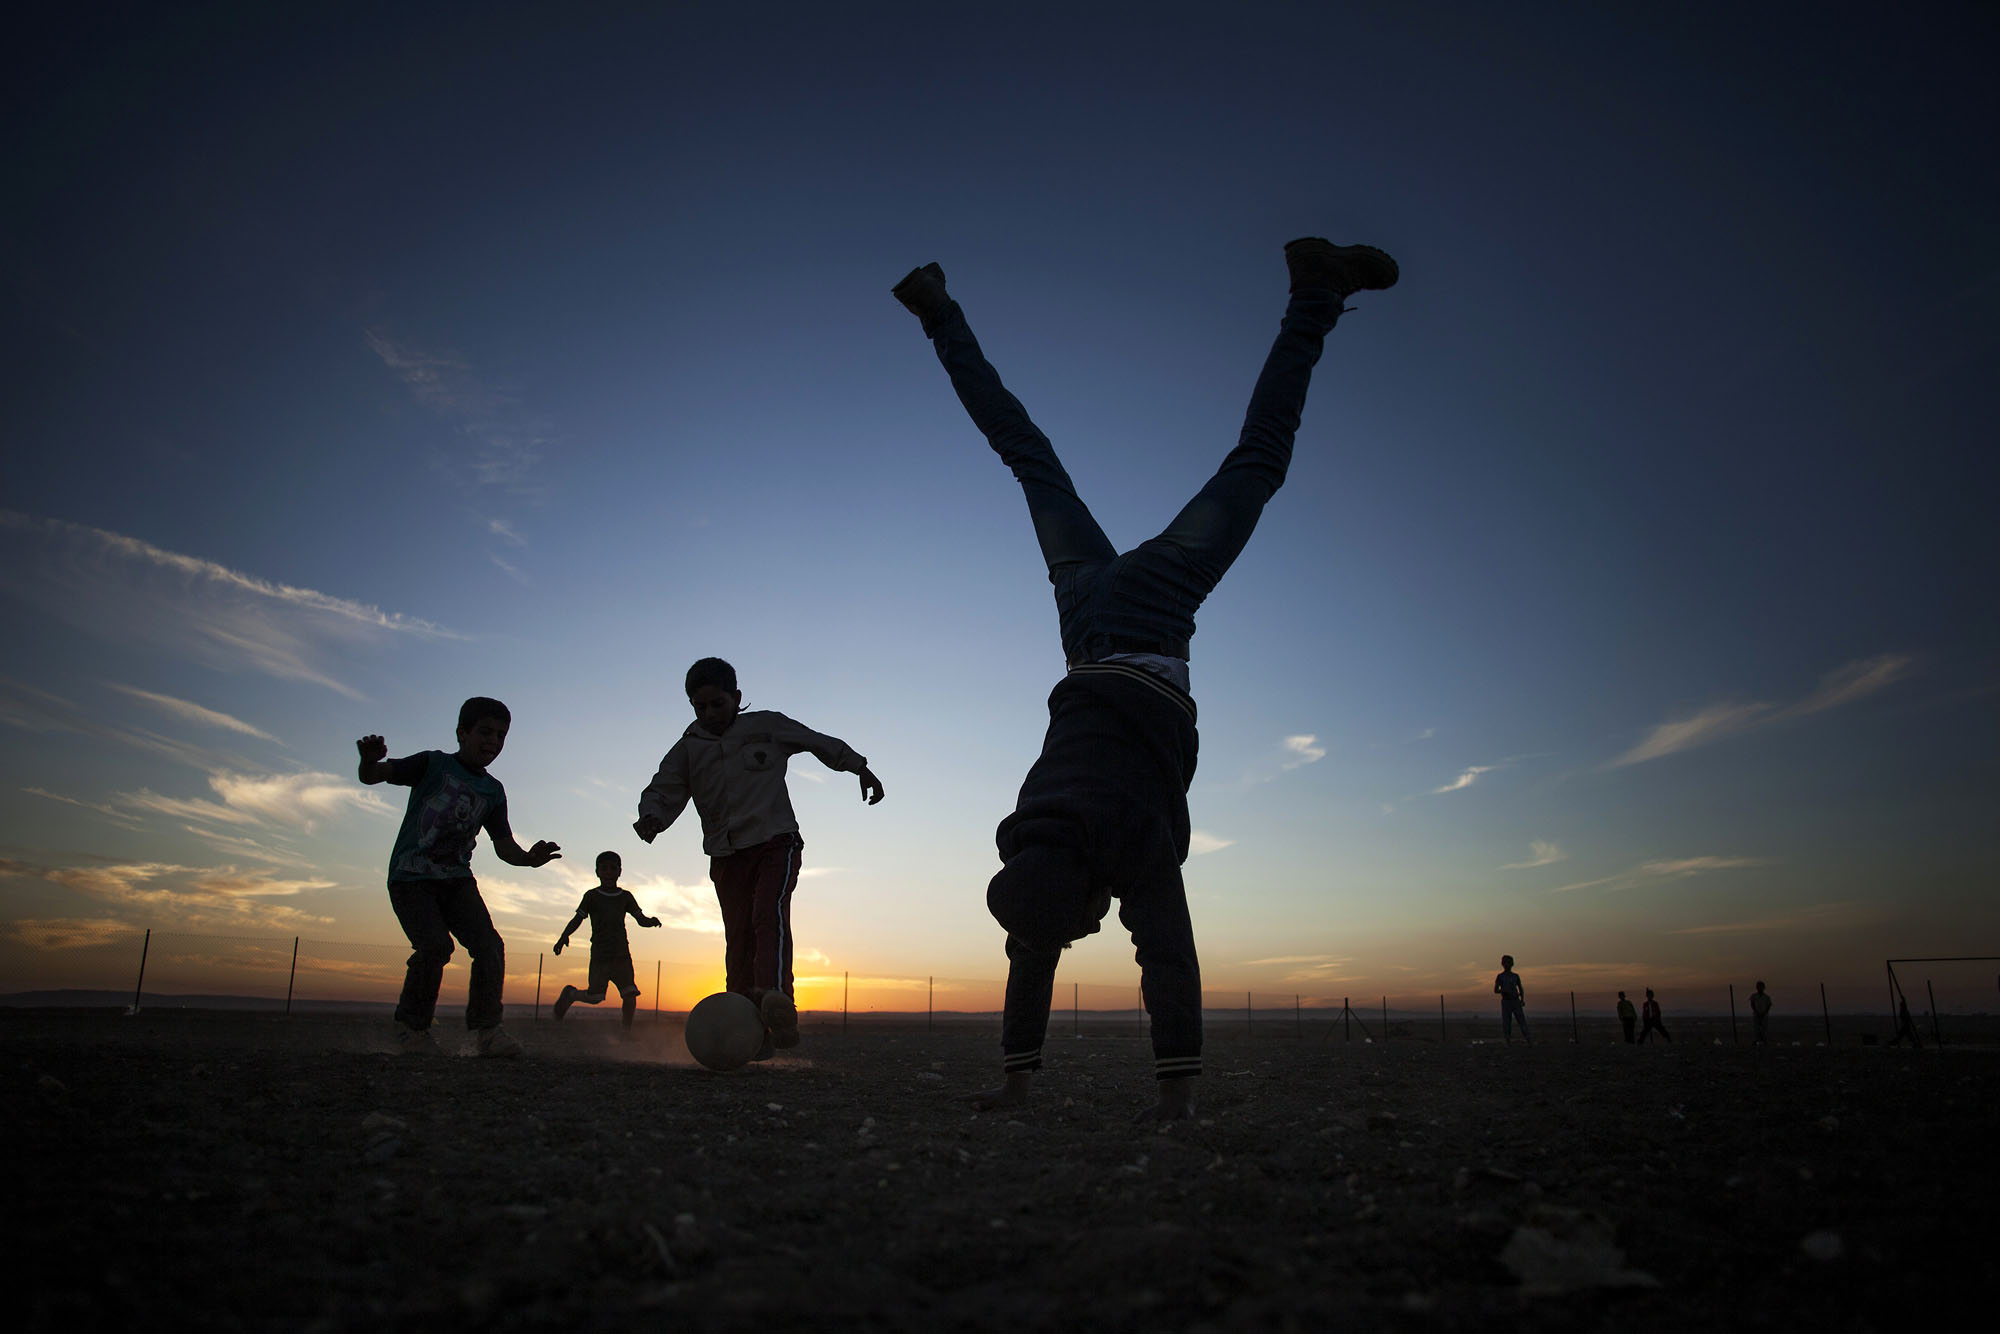 In this Thursday, Oct. 24, 2013, photo, a coach's assistant does a handstand while Syrian children play soccer at the Zaatari refugee camp near the Syrian border in Jordan. With Syria's civil war in its third year, more than 2 million Syrians have fled their country. About 100,000 live in this camp. (AP Photo/Manu Brabo)